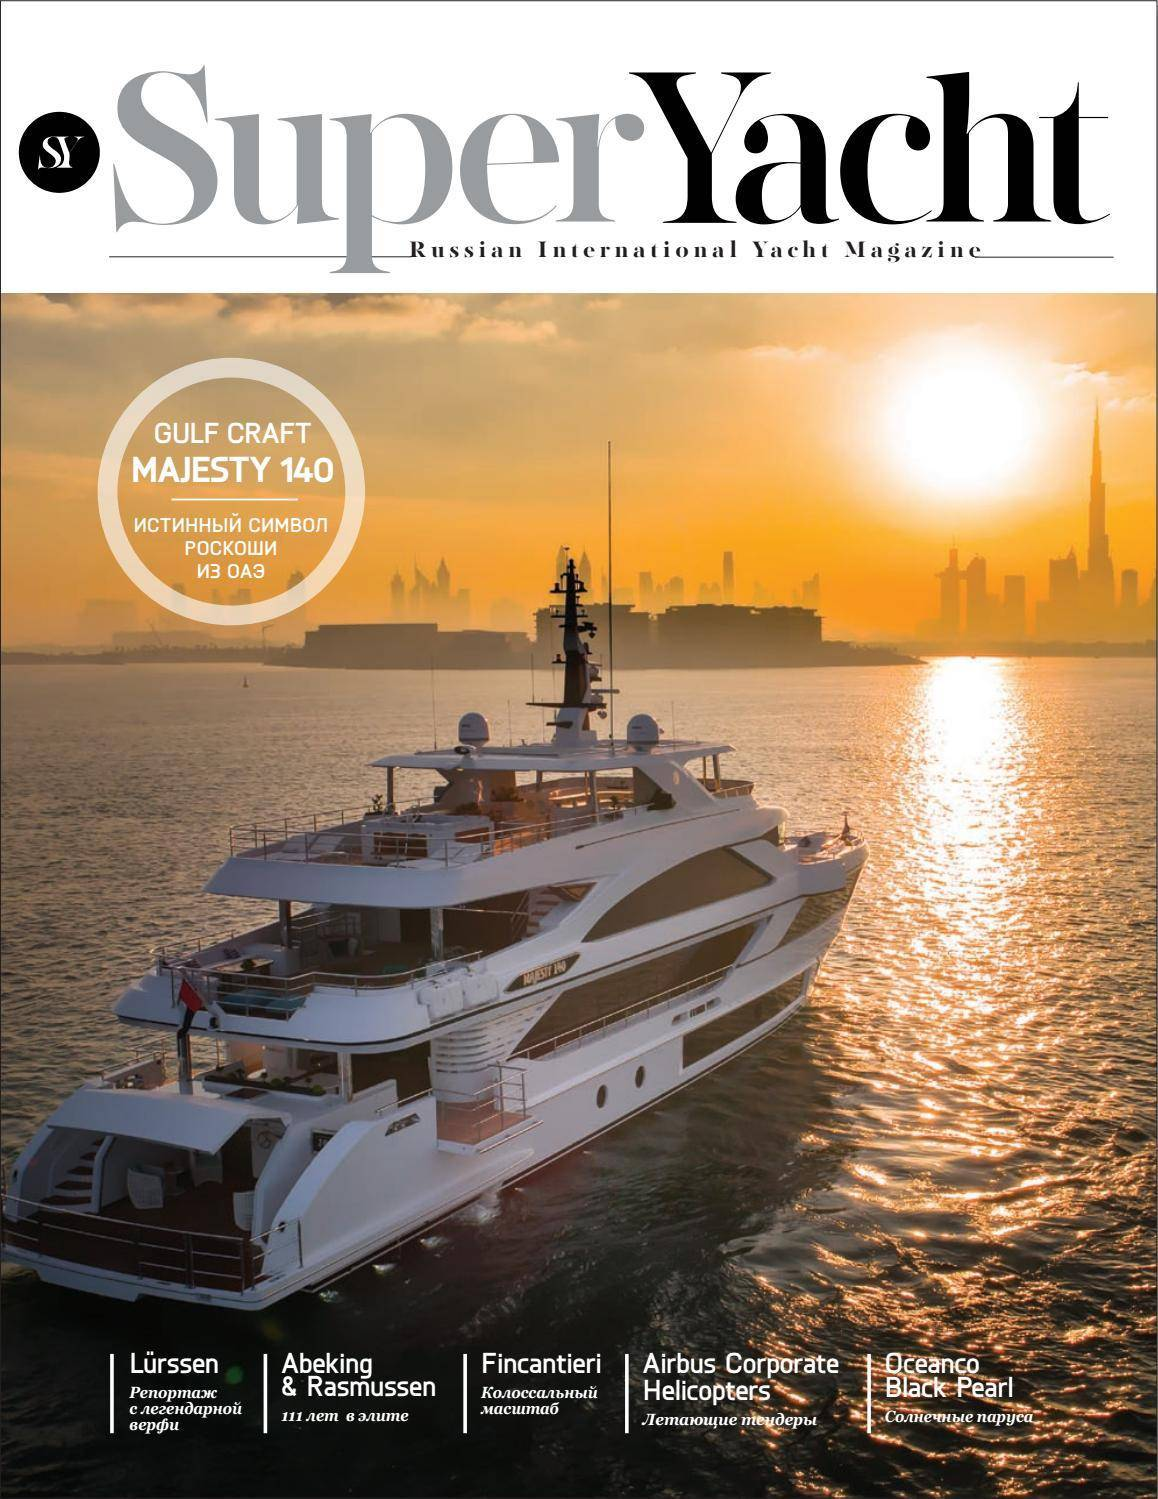 Winners of the world superyacht awards 2018 announced